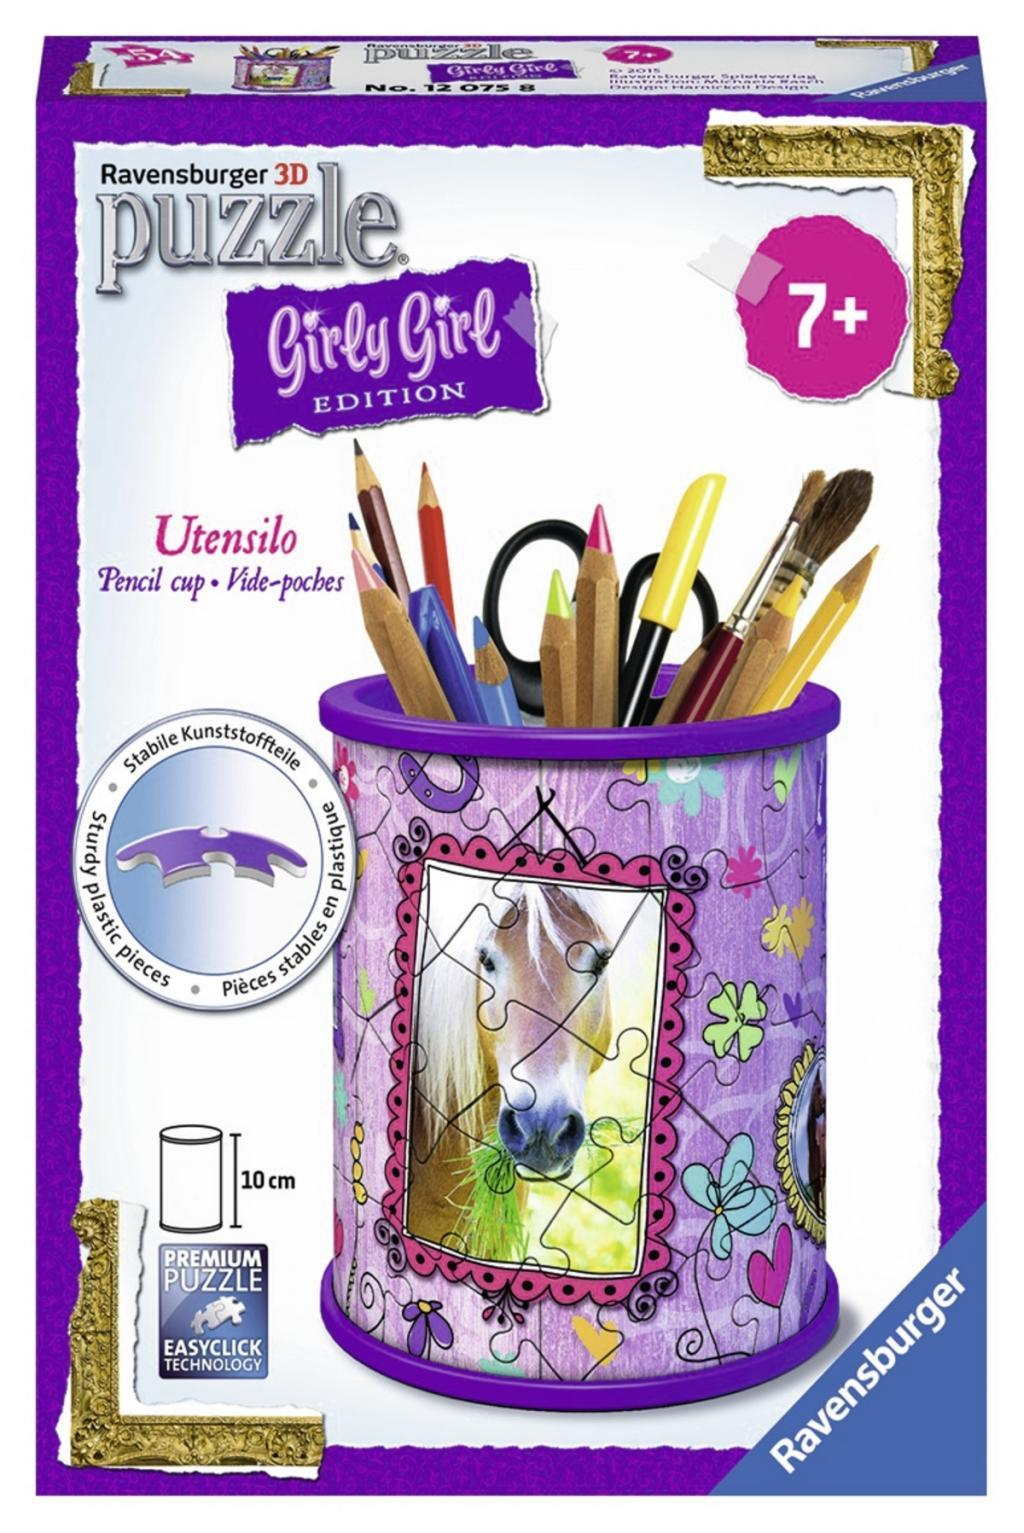 Ravensburger 12074 - 3D Puzzle Girly Girl Edition Utensilo Pferde | eBay